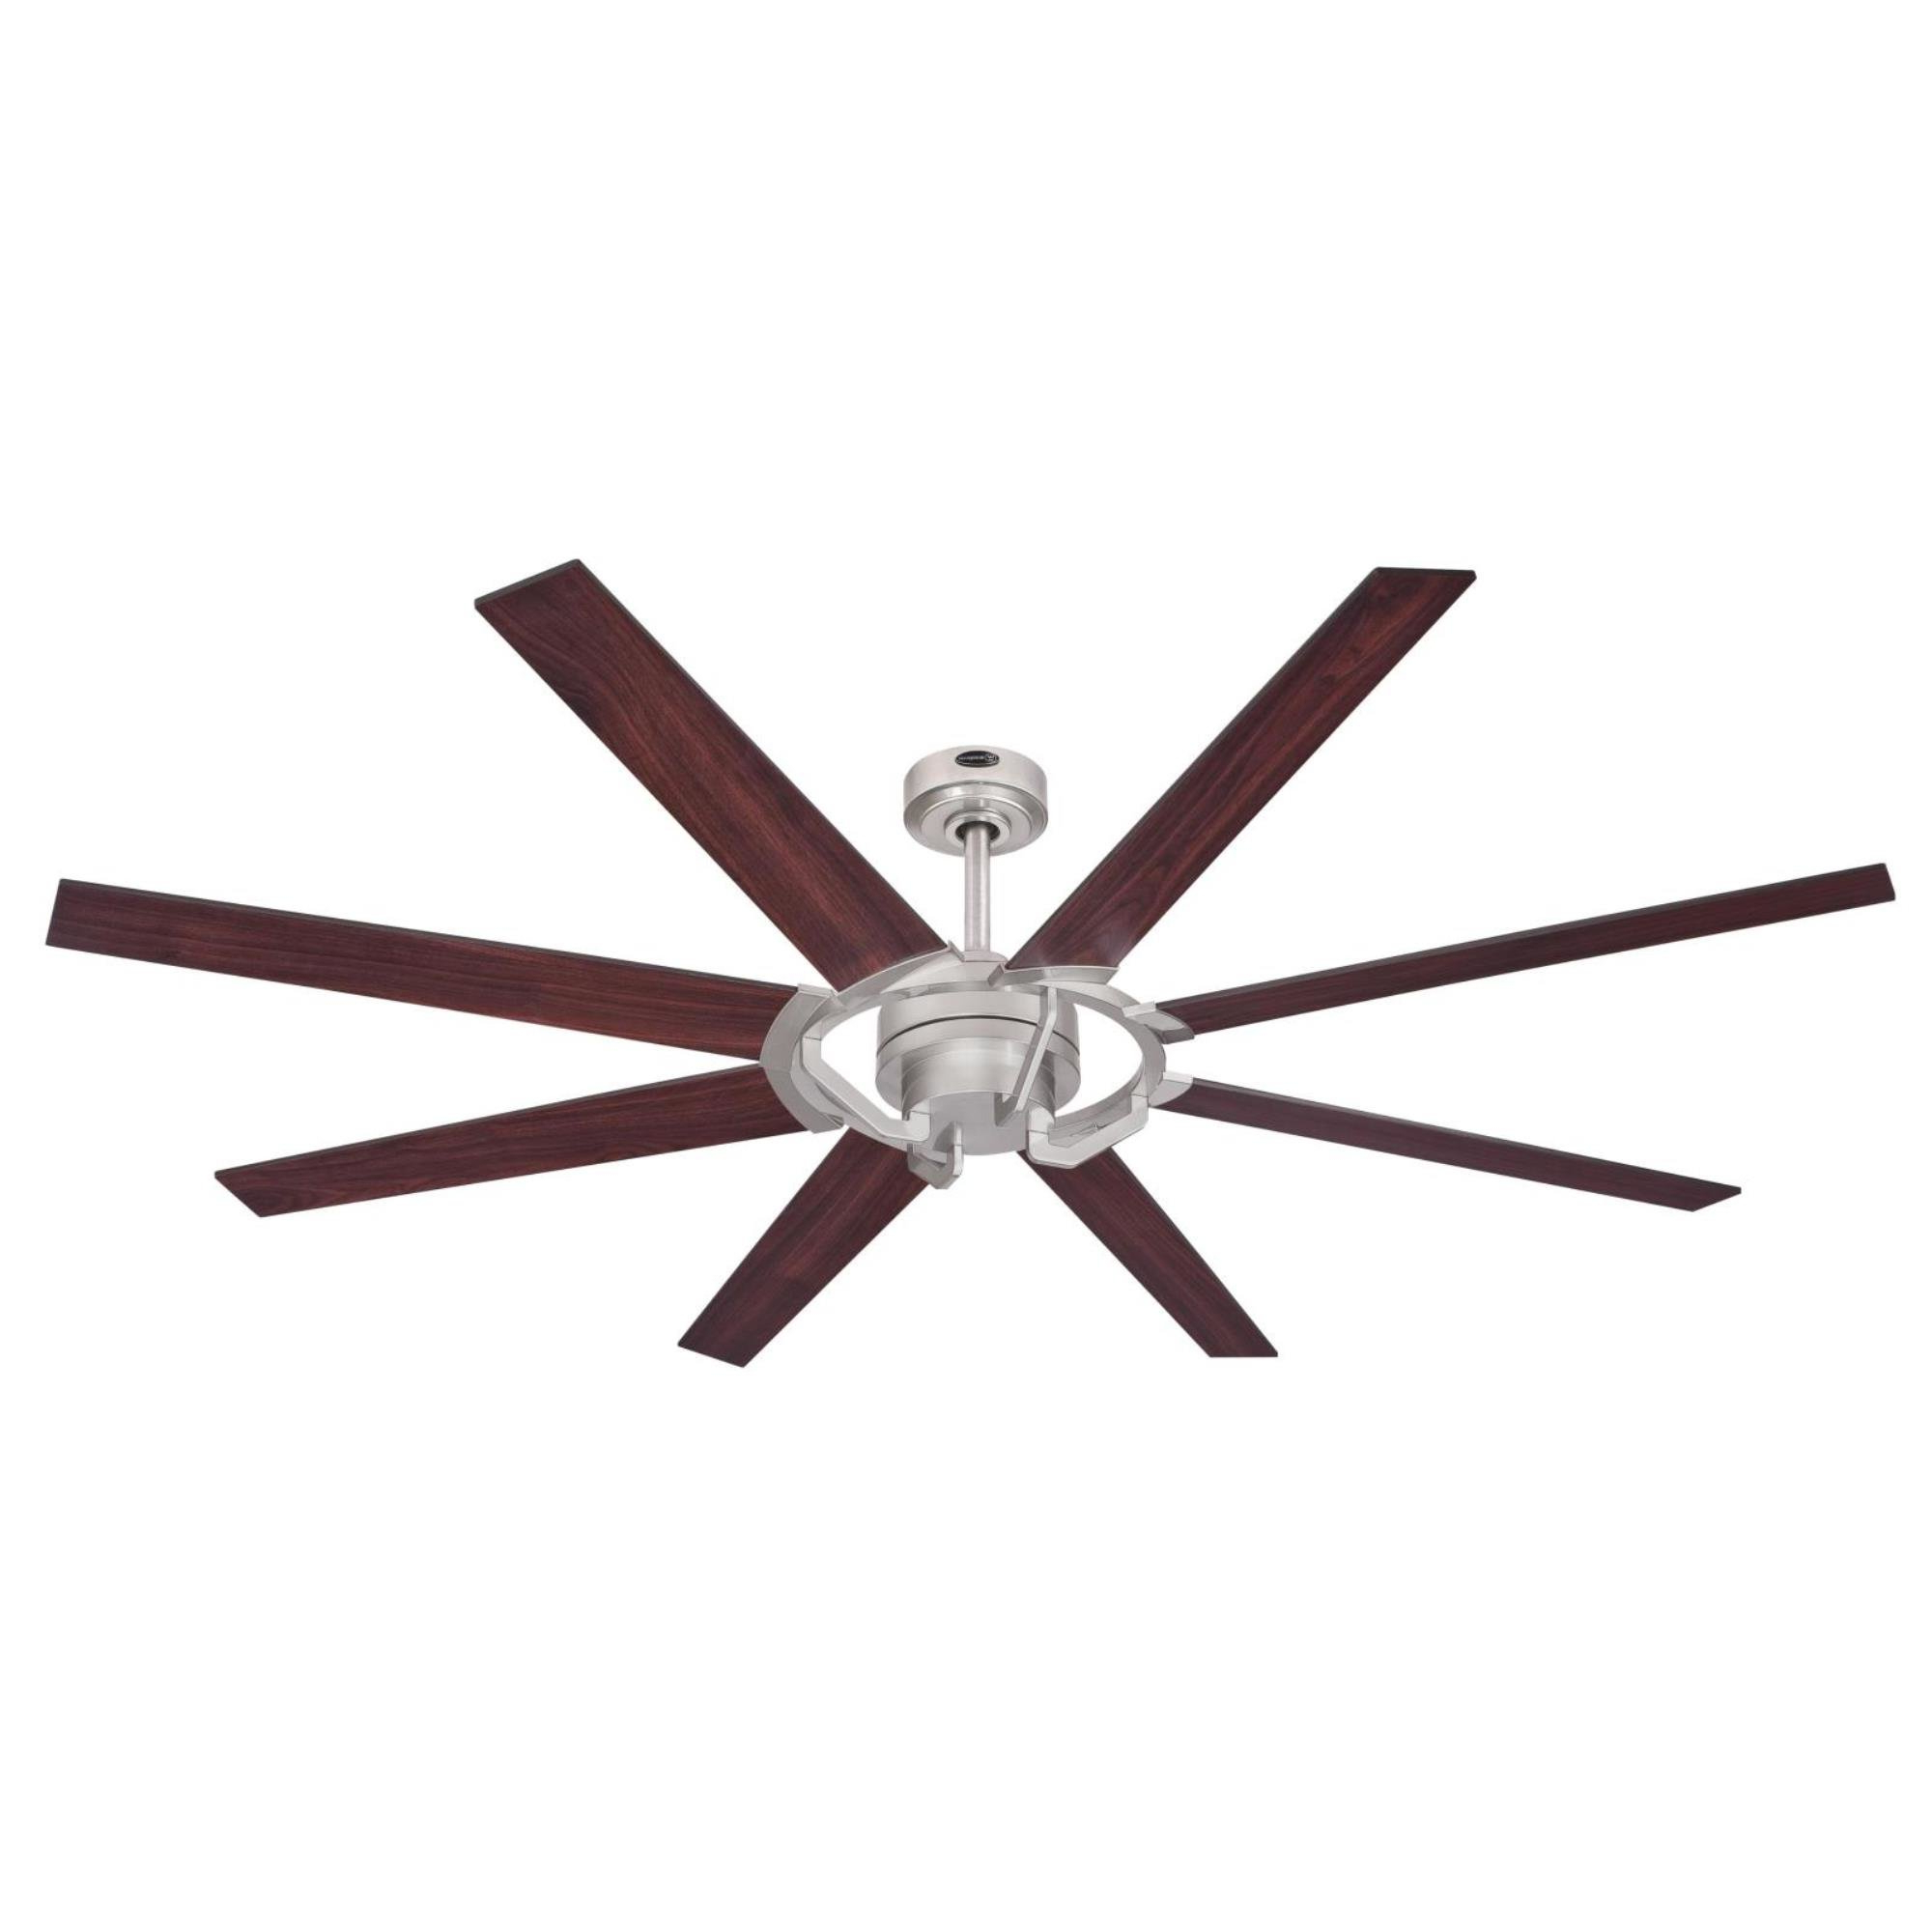 "Cillian 6 Blade Ceiling Fans Throughout Preferred 68"" Ennis 8 Blade Ceiling Fan With Remote (View 8 of 20)"